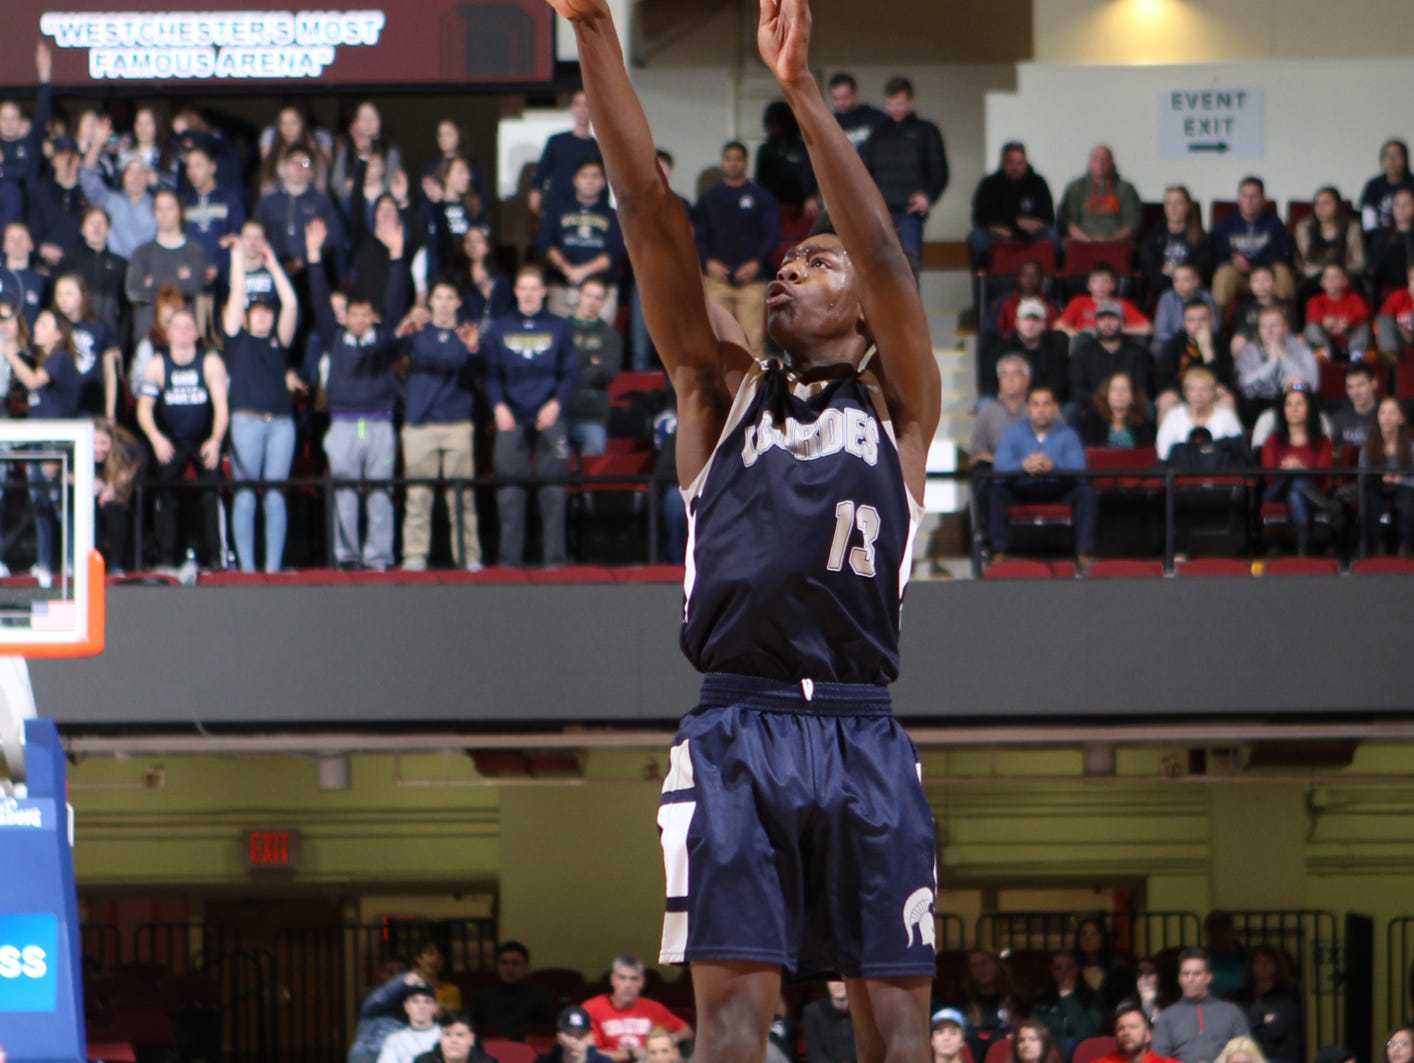 Our Lady of Lourdes High School's Kevin Townes puts up a 3-pointer against Tappan Zee in the Section 1 Class A boys final at the Westchester County Center in White Plains on Sunday.